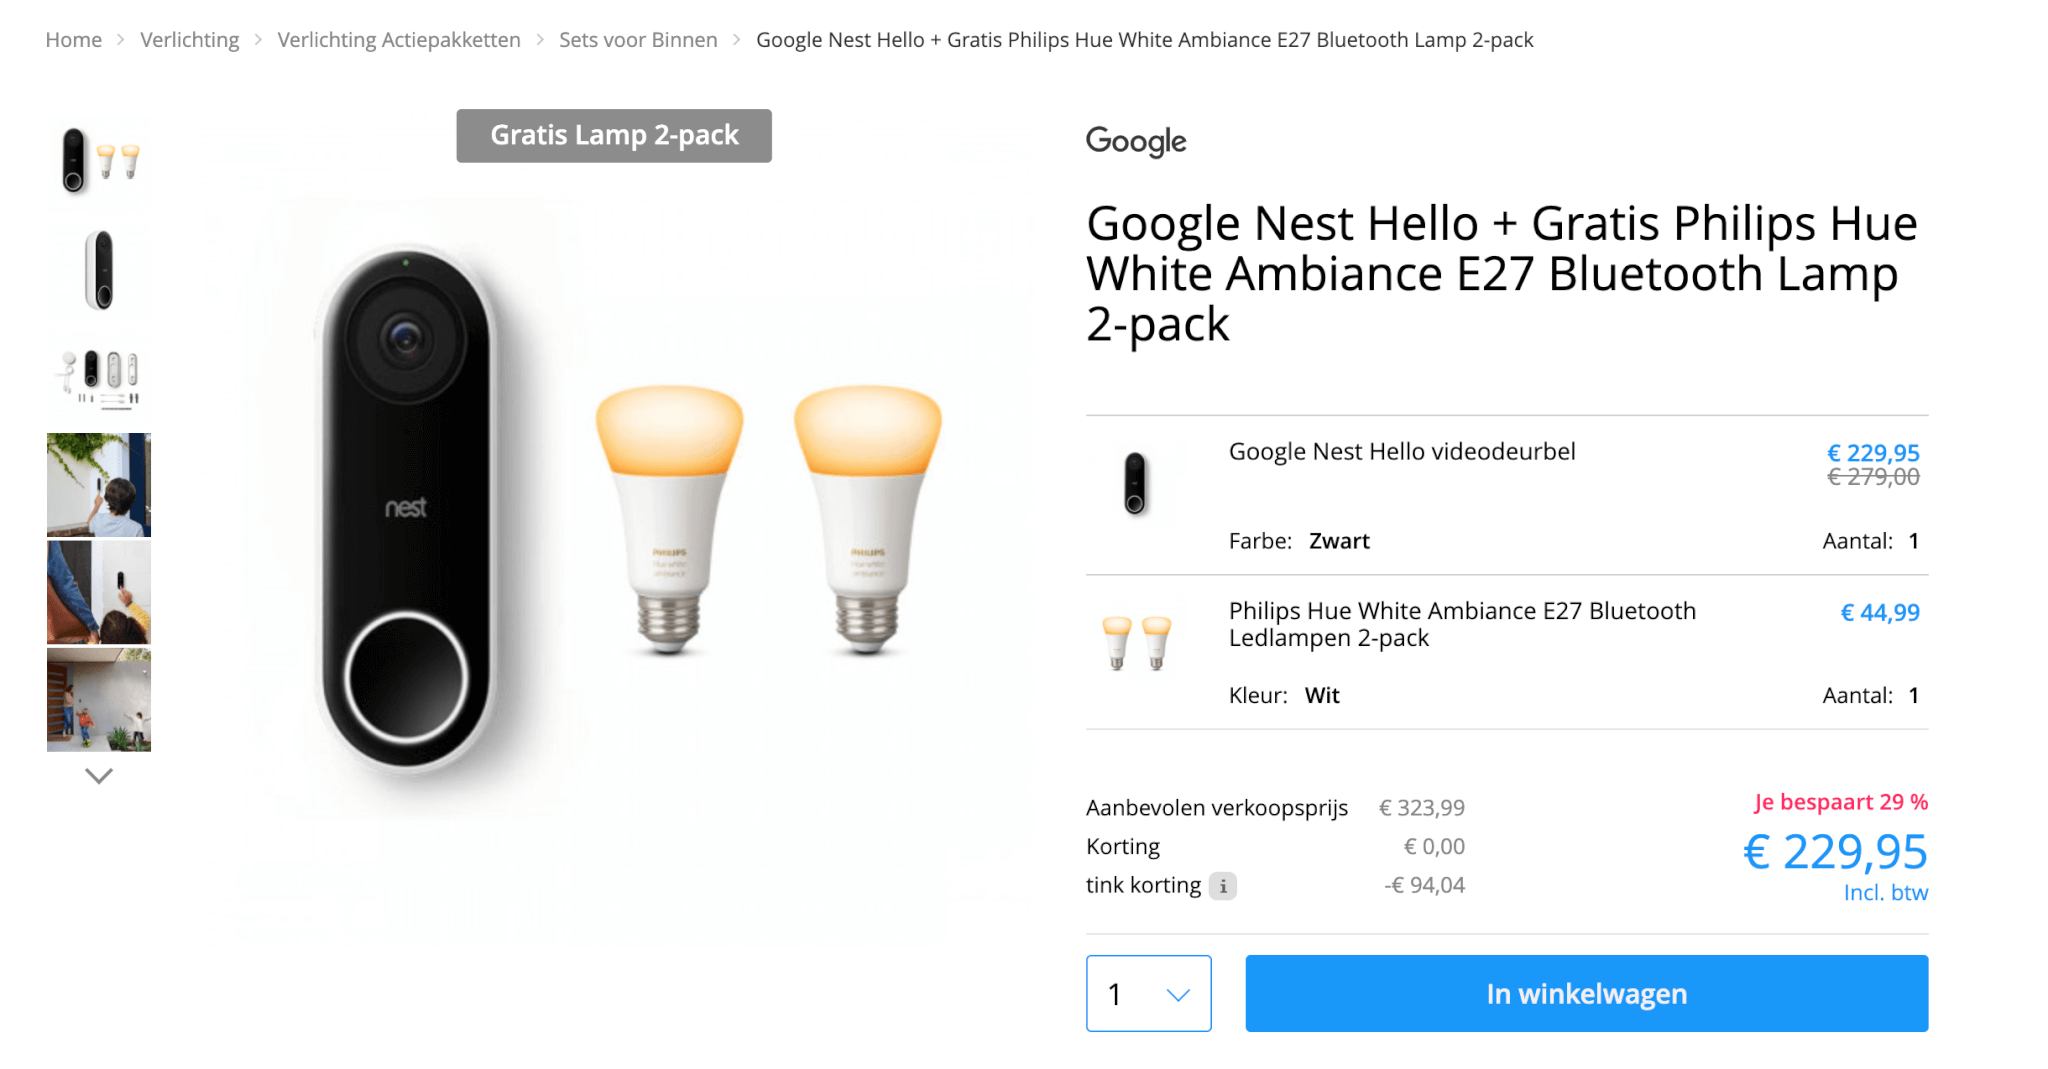 Nest video deurbel gratis hue lampen